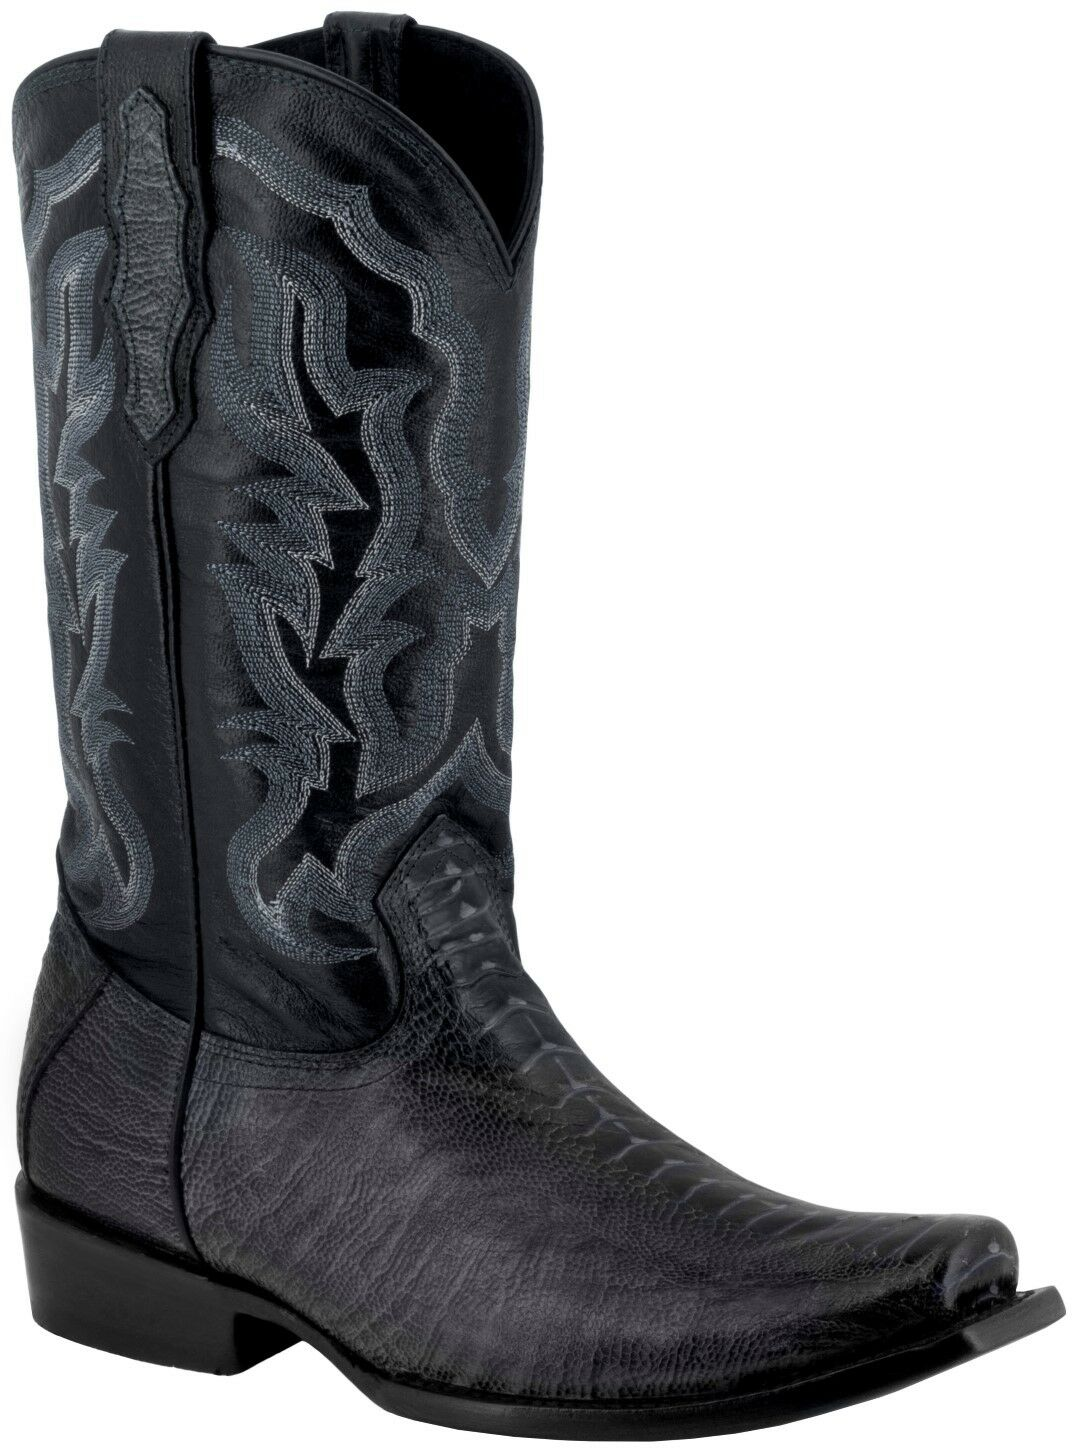 Mens Black Ostrich Foot Pattern Leather Western Cowboy Boots Square Toe